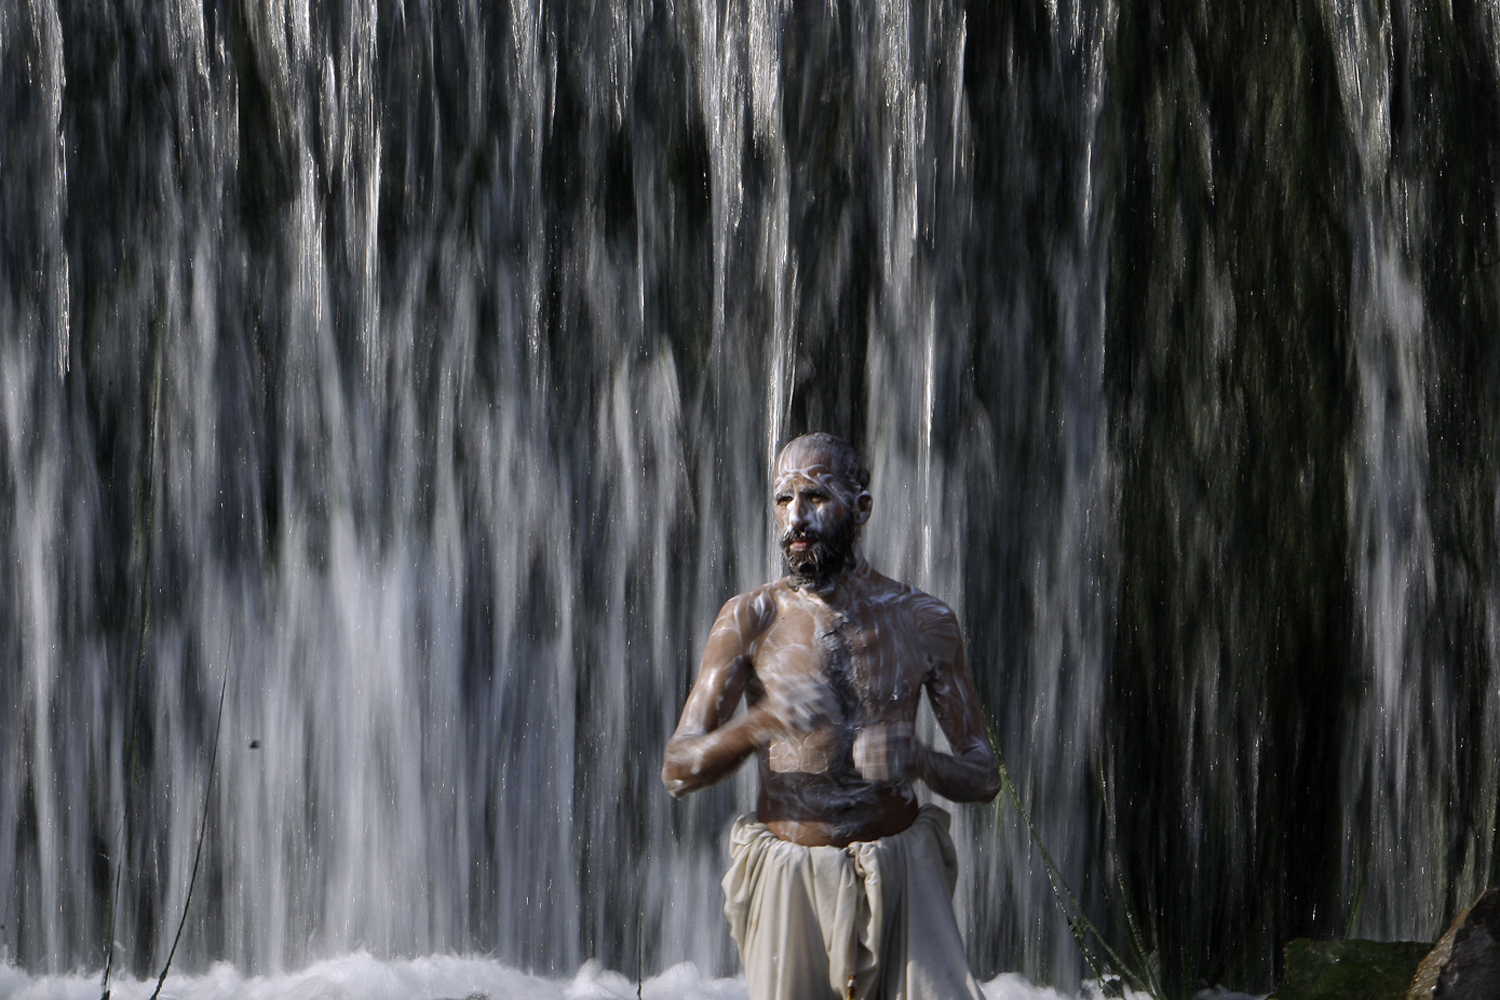 September 28, 2011. A Pakistani man showers in a watercourse in Islamabad, Pakistan.